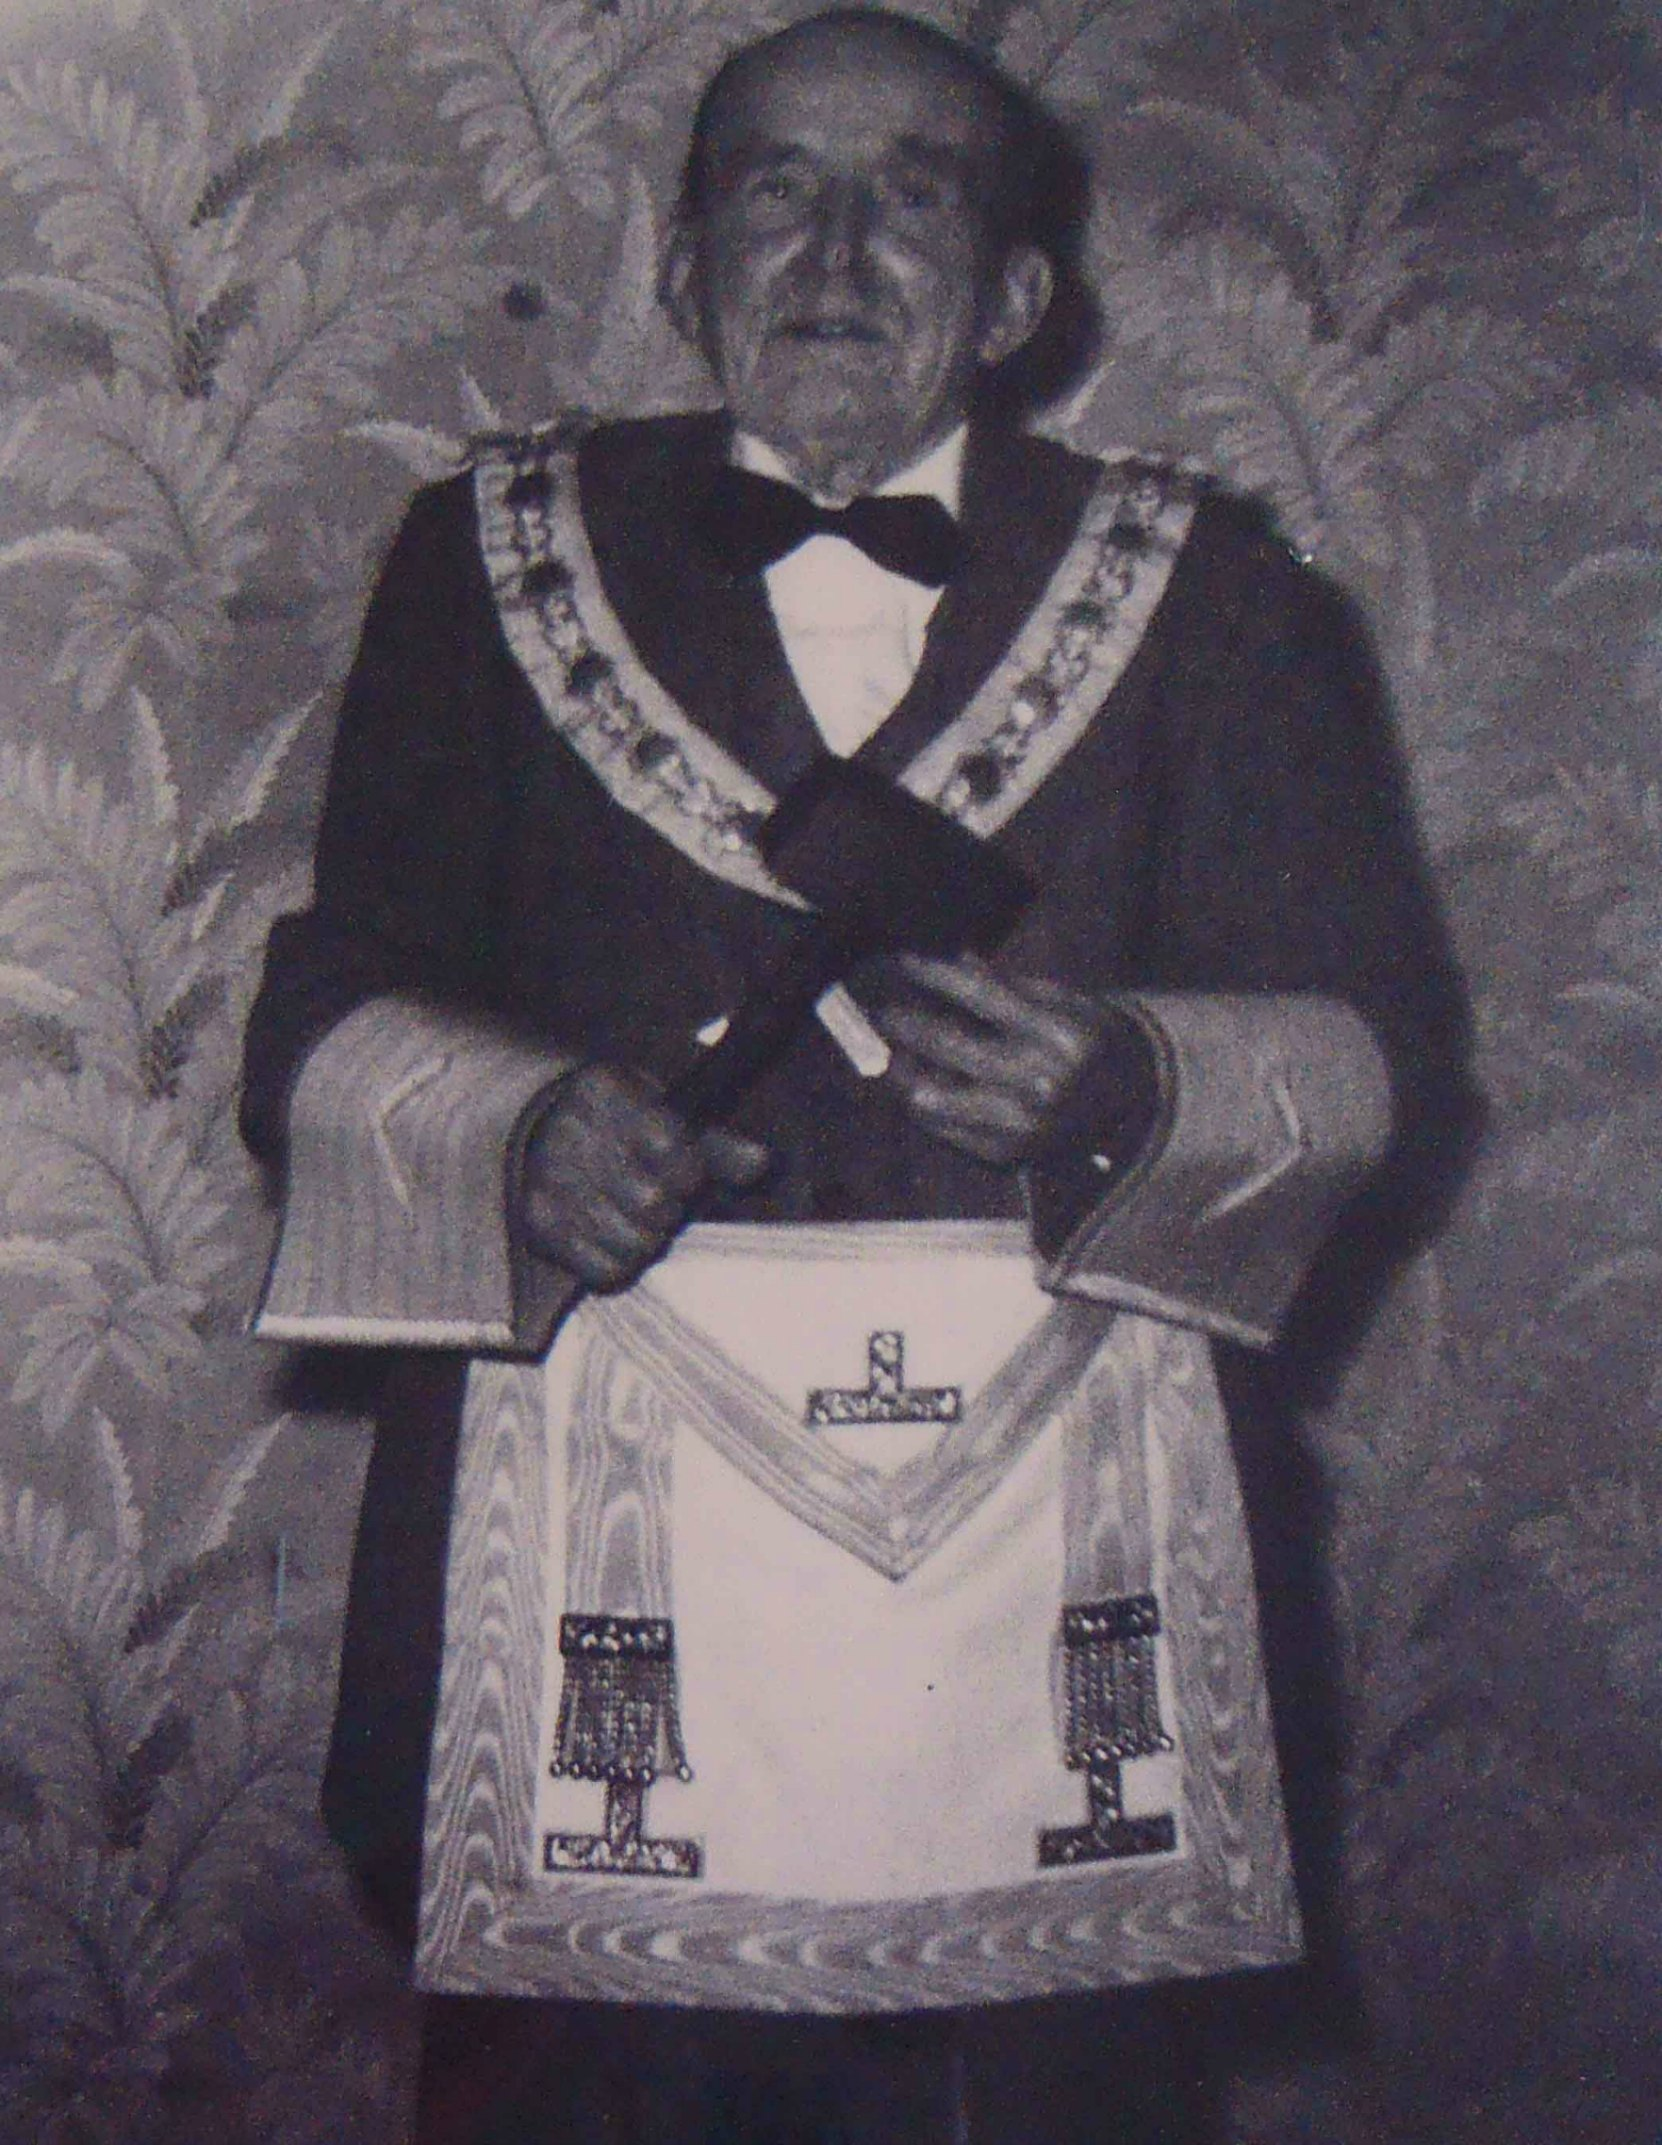 James McLeod Campbell in Masonic regalia, aged 94 in 1958